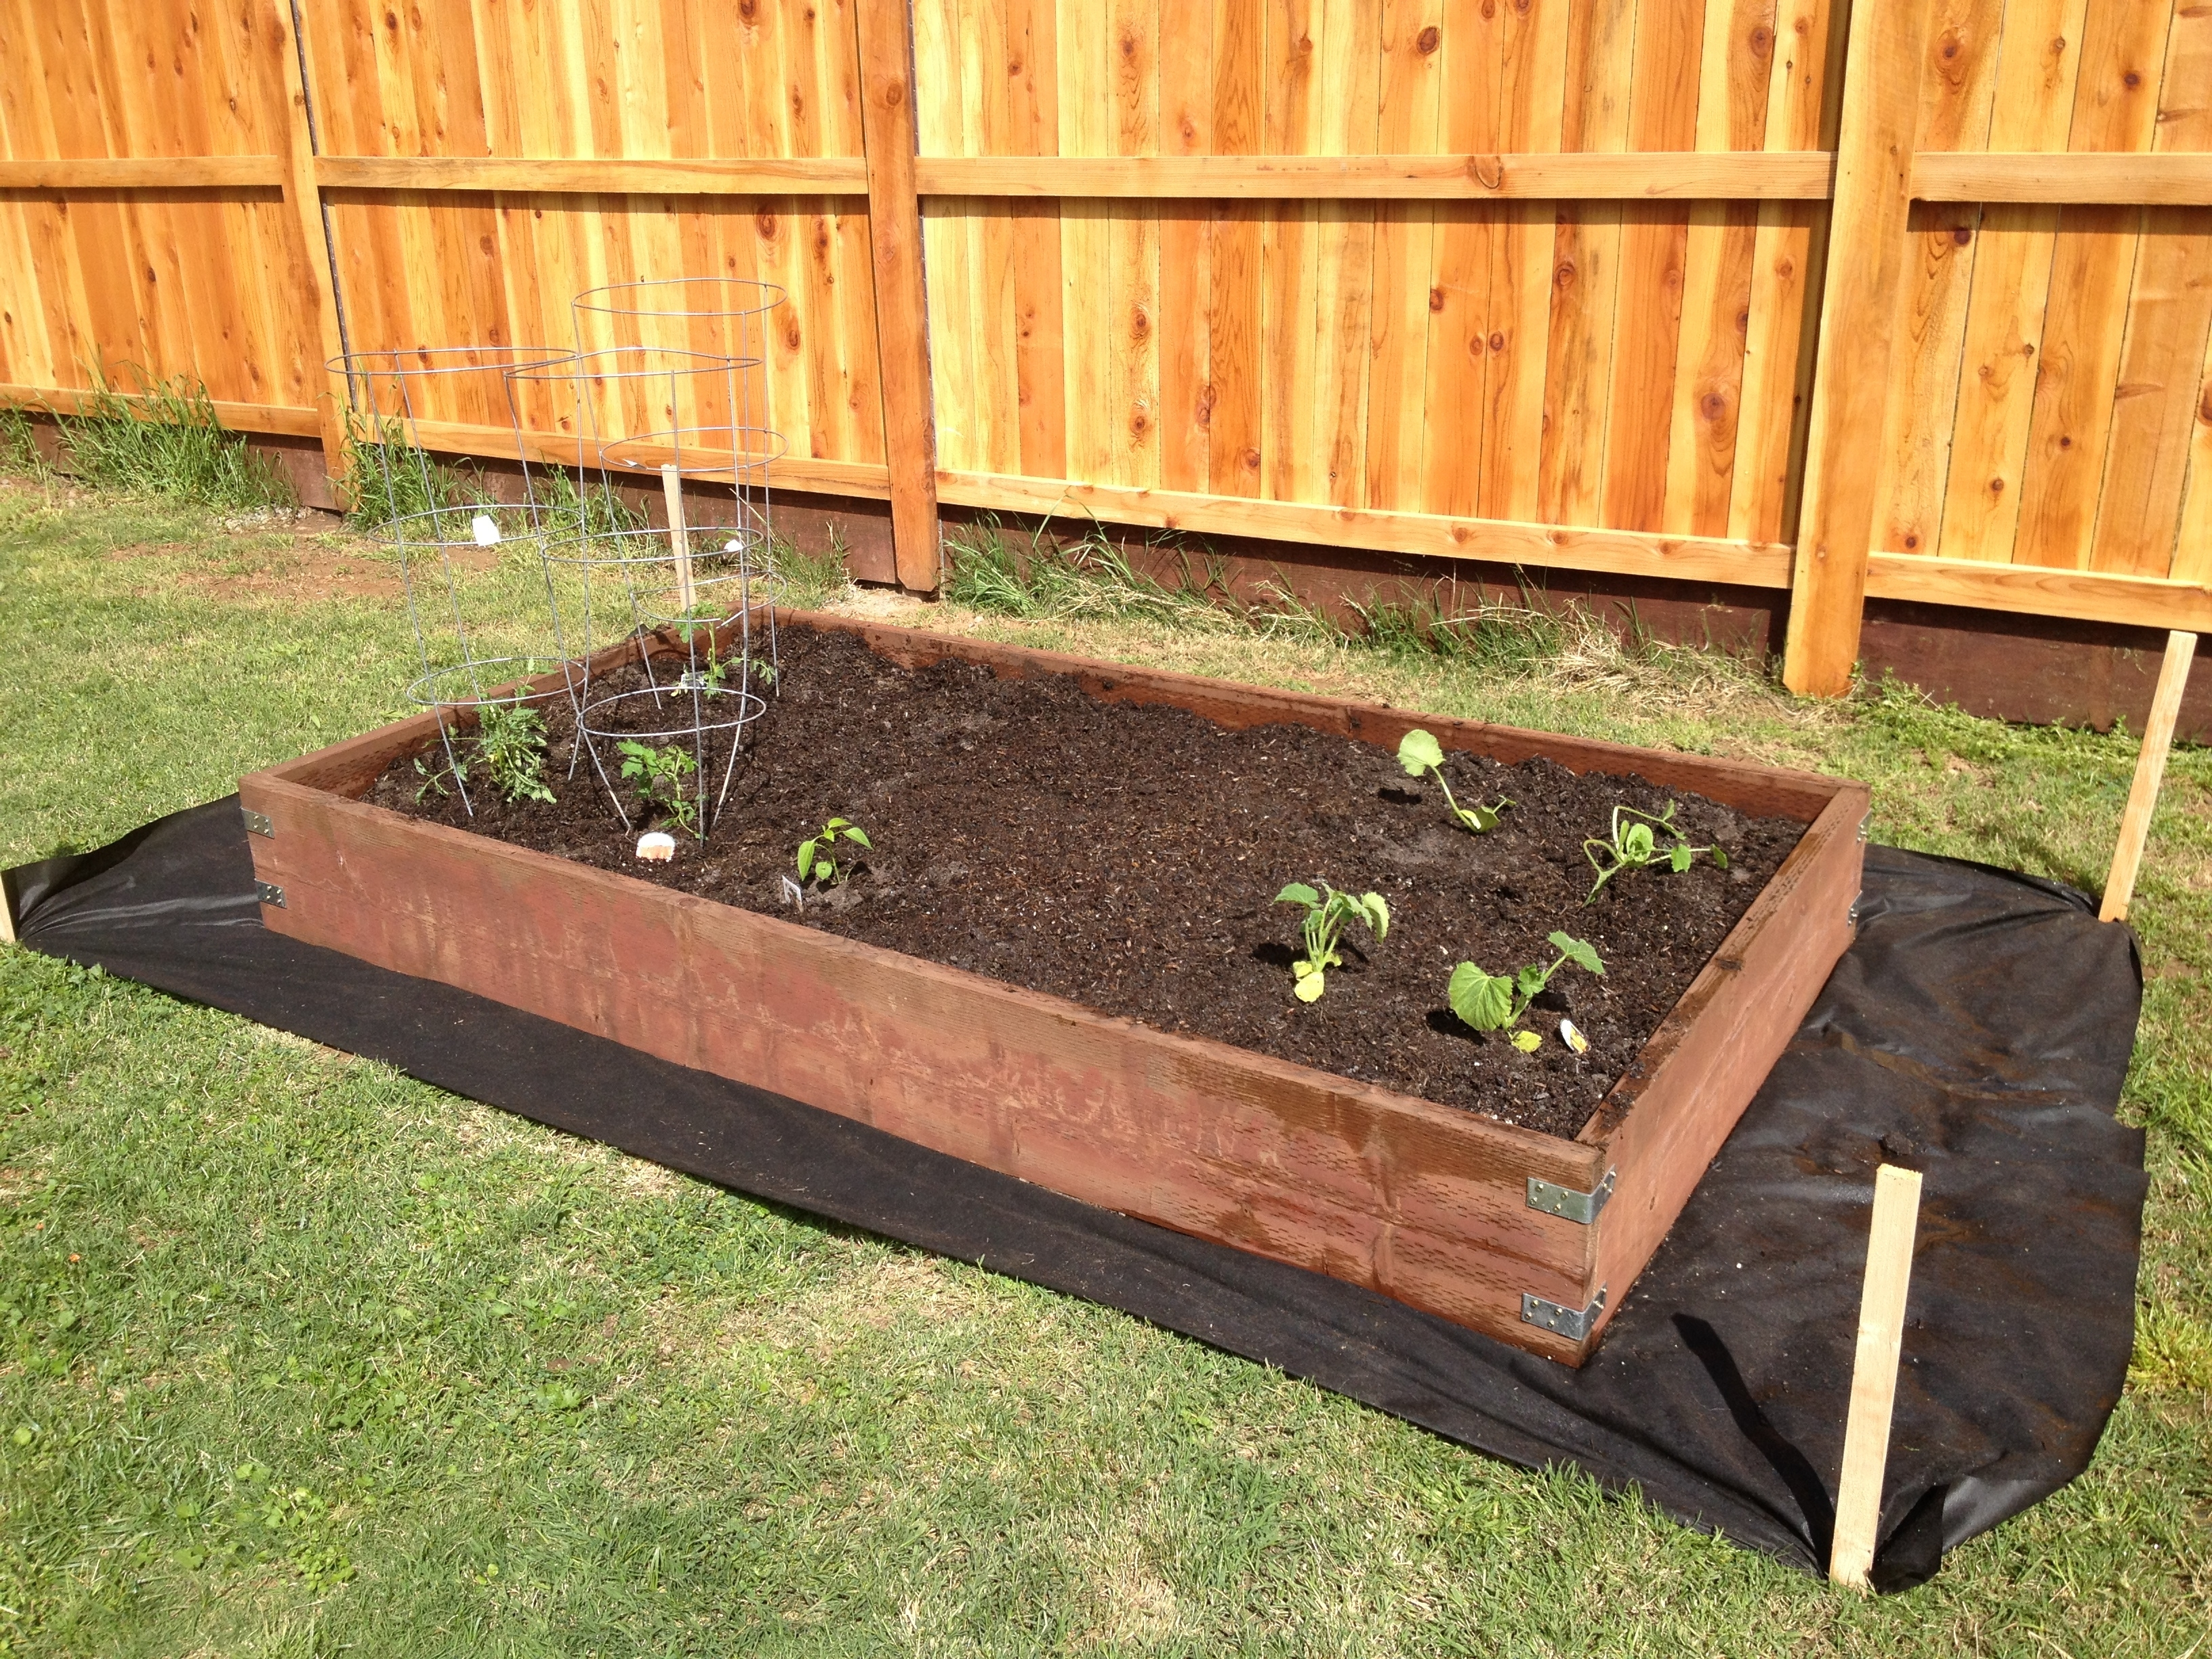 Garden Box Made Using 2X12 Pressure Treated Wood And L Brackets within How To Make Backyard Garden Box